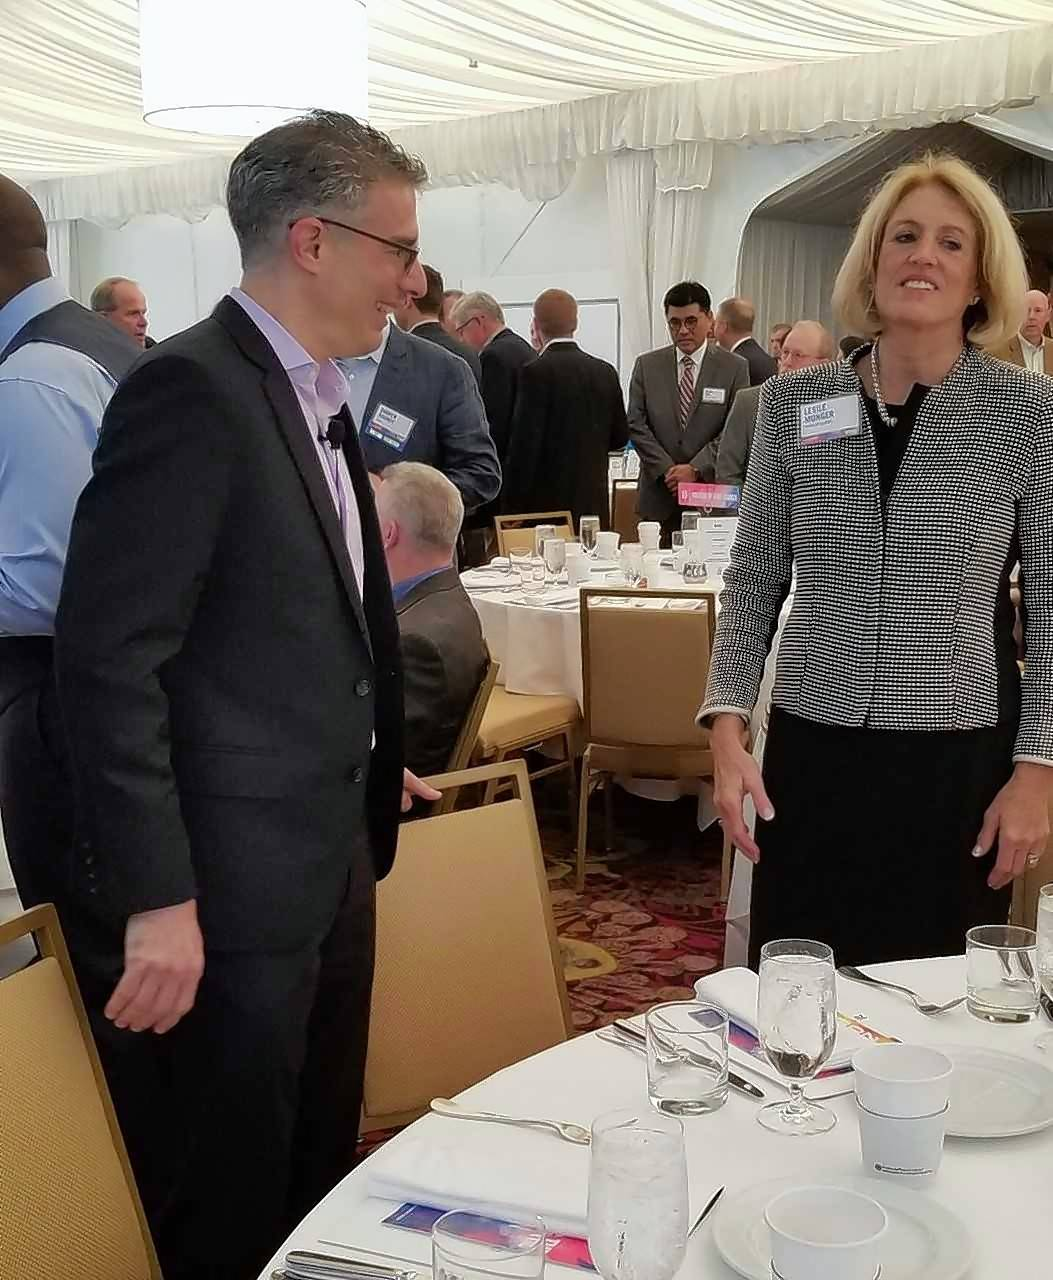 Keynote speaker Robert Safian talks with former state comptroller Leslie Munger before the Lake County Partners economic event Friday in Lincolnshire.